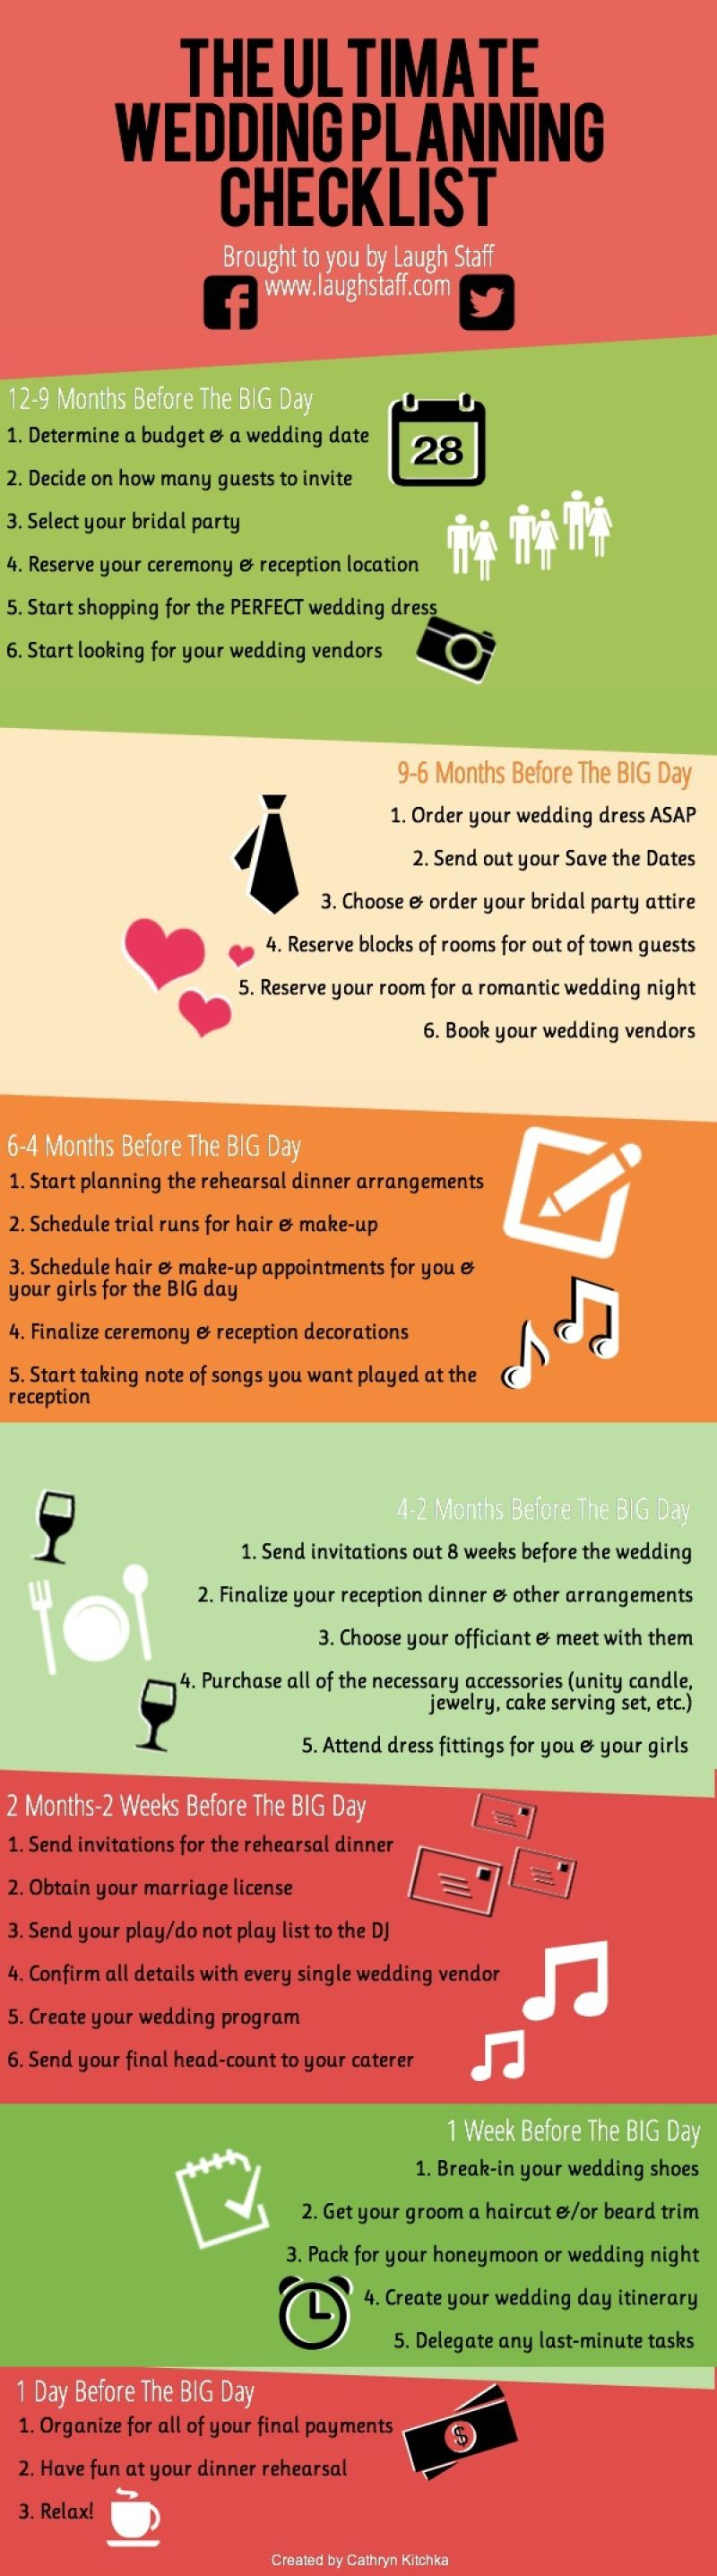 The Ultimate Wedding Checklist WonT Need This For A While But